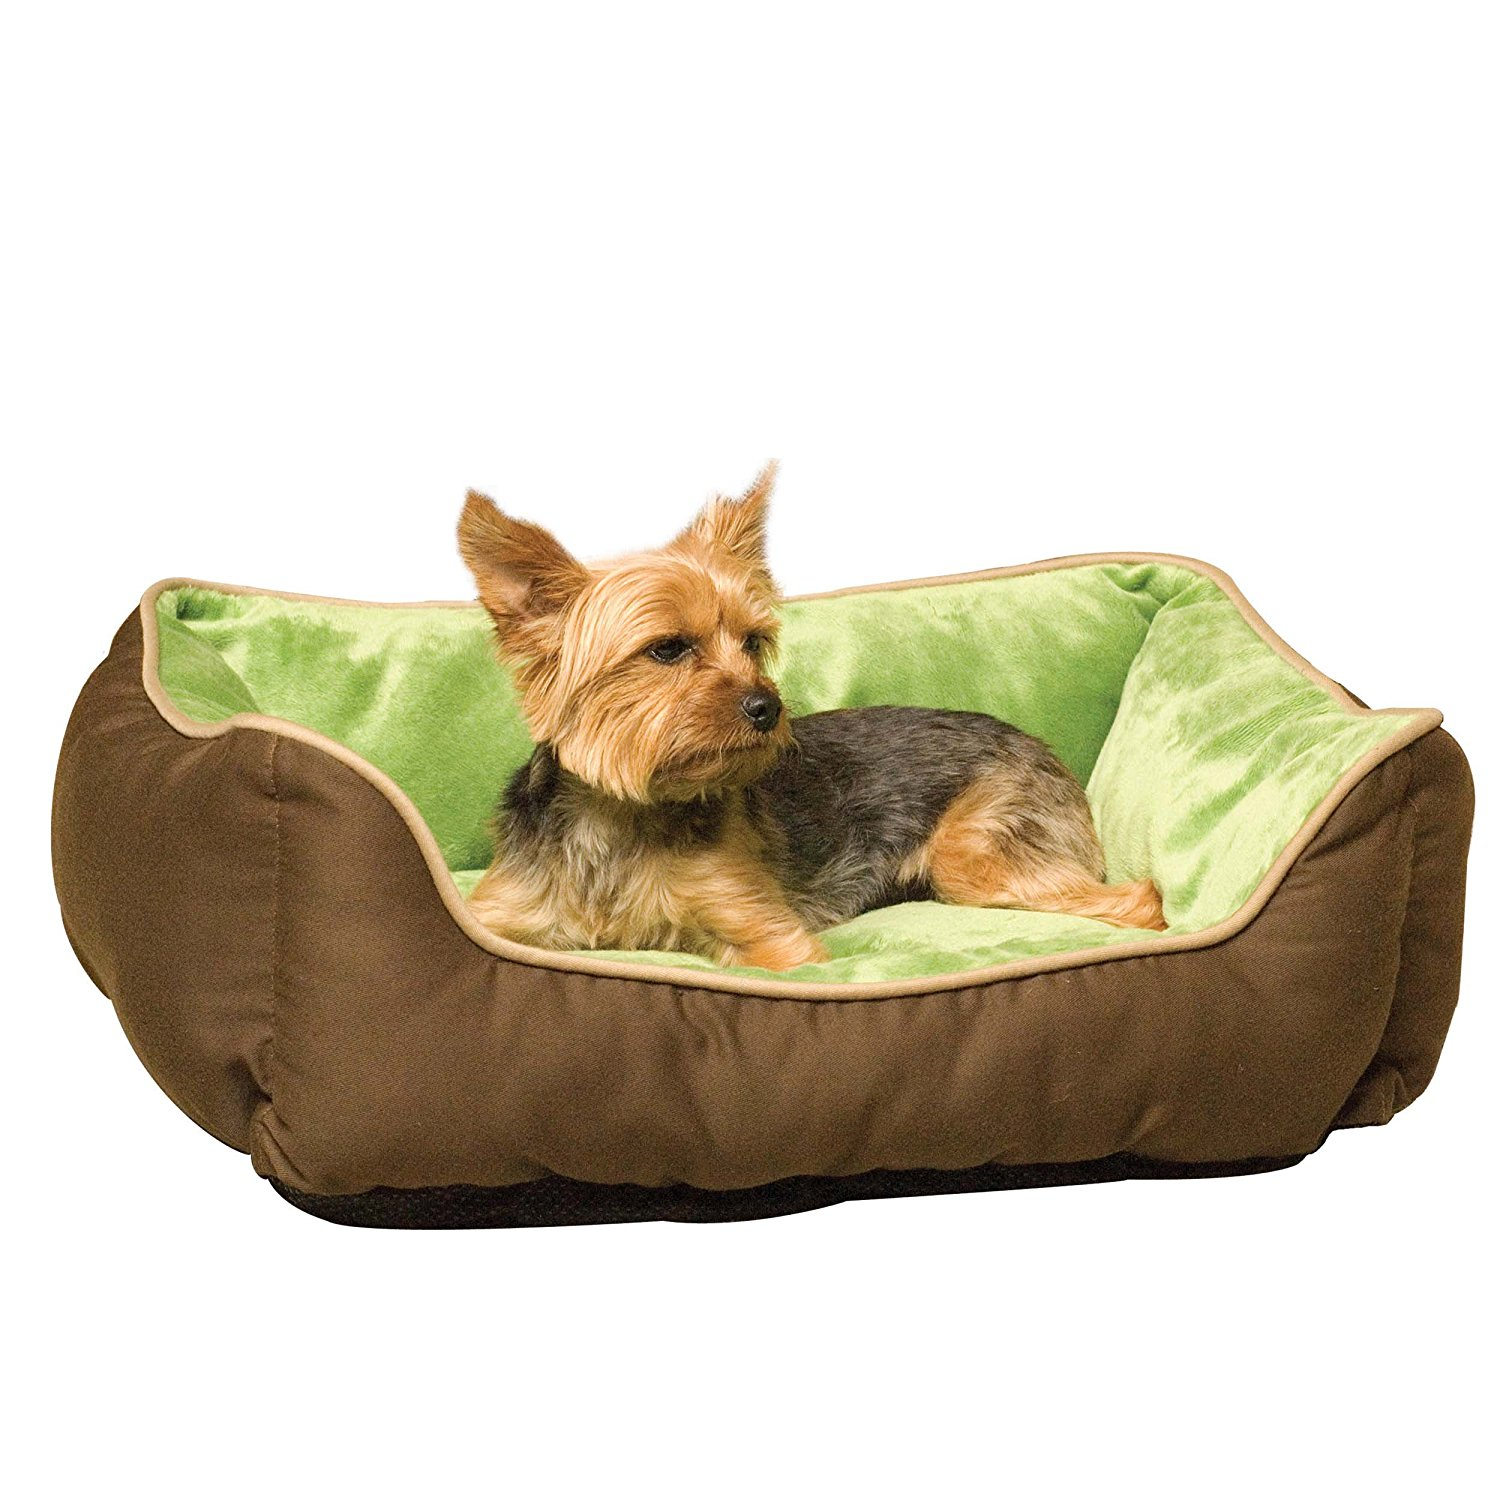 9.-KH-Pet-Products-Self-Warming-Lounge-Sleeper-Pet-Bed-16-x-20 10 Best Dog Beds for Small Dogs